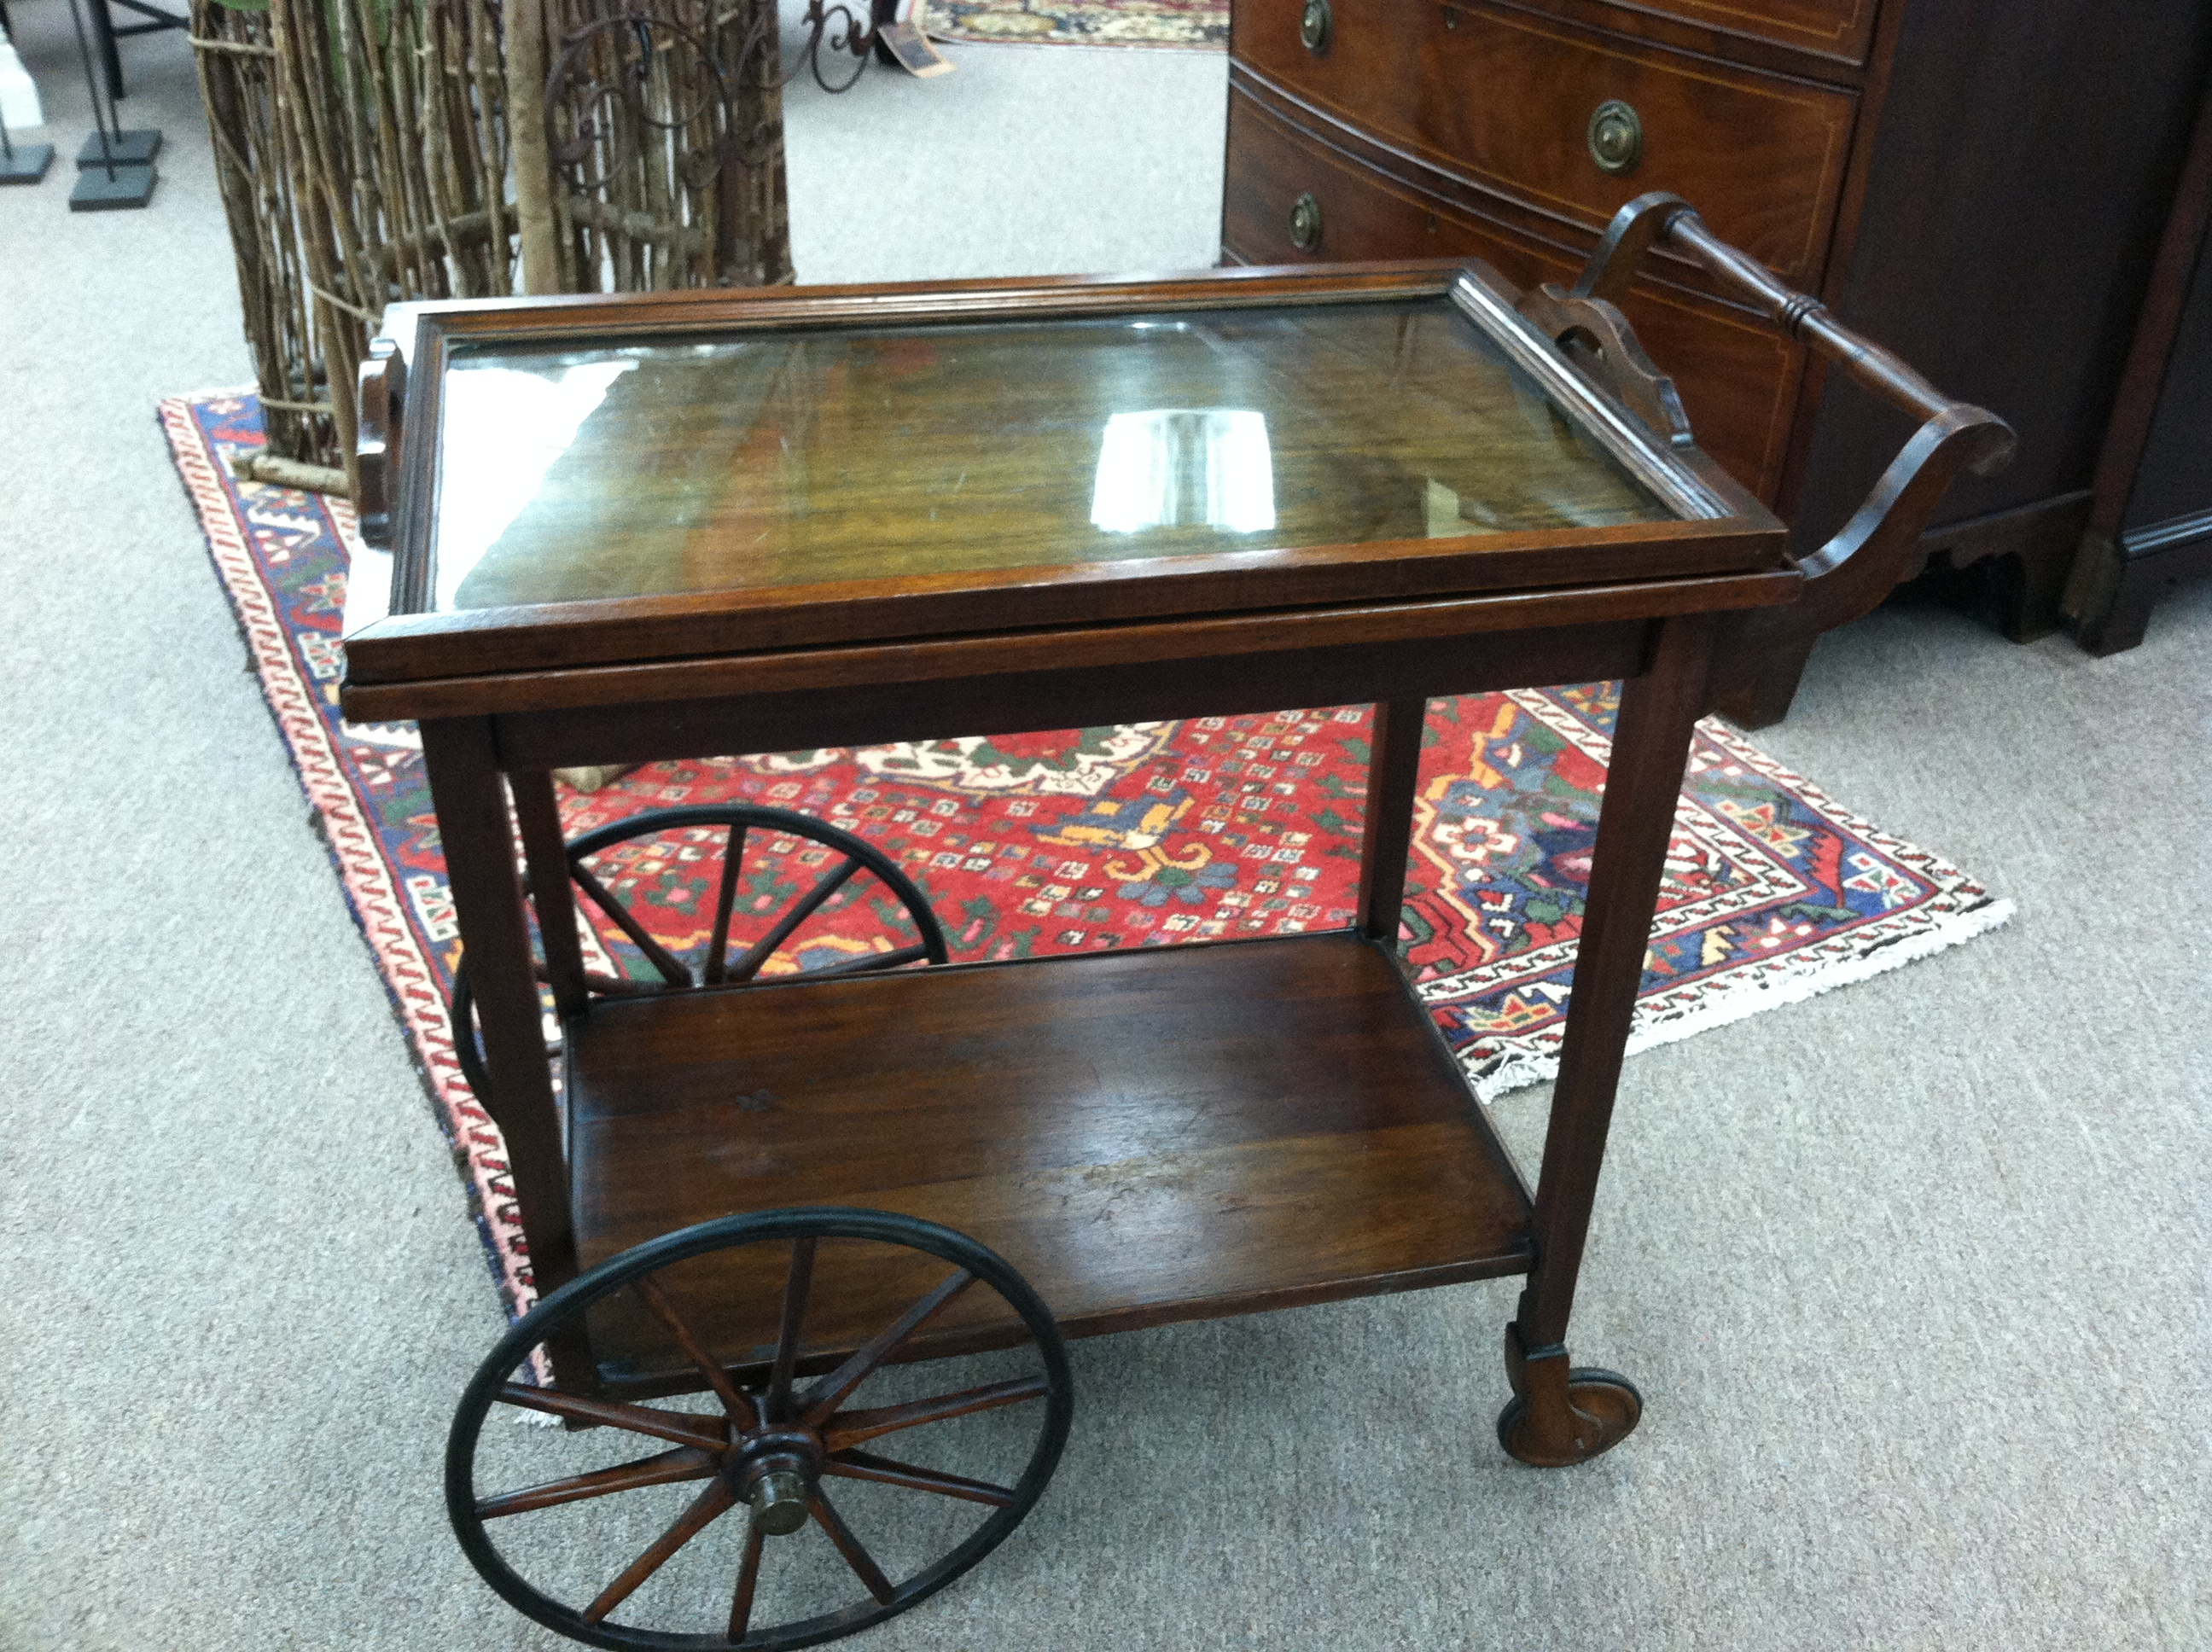 Gorgeous Antique Mahogany Rolling Tea Cart circa 1920 For Sale : Antiques.com : Classifieds